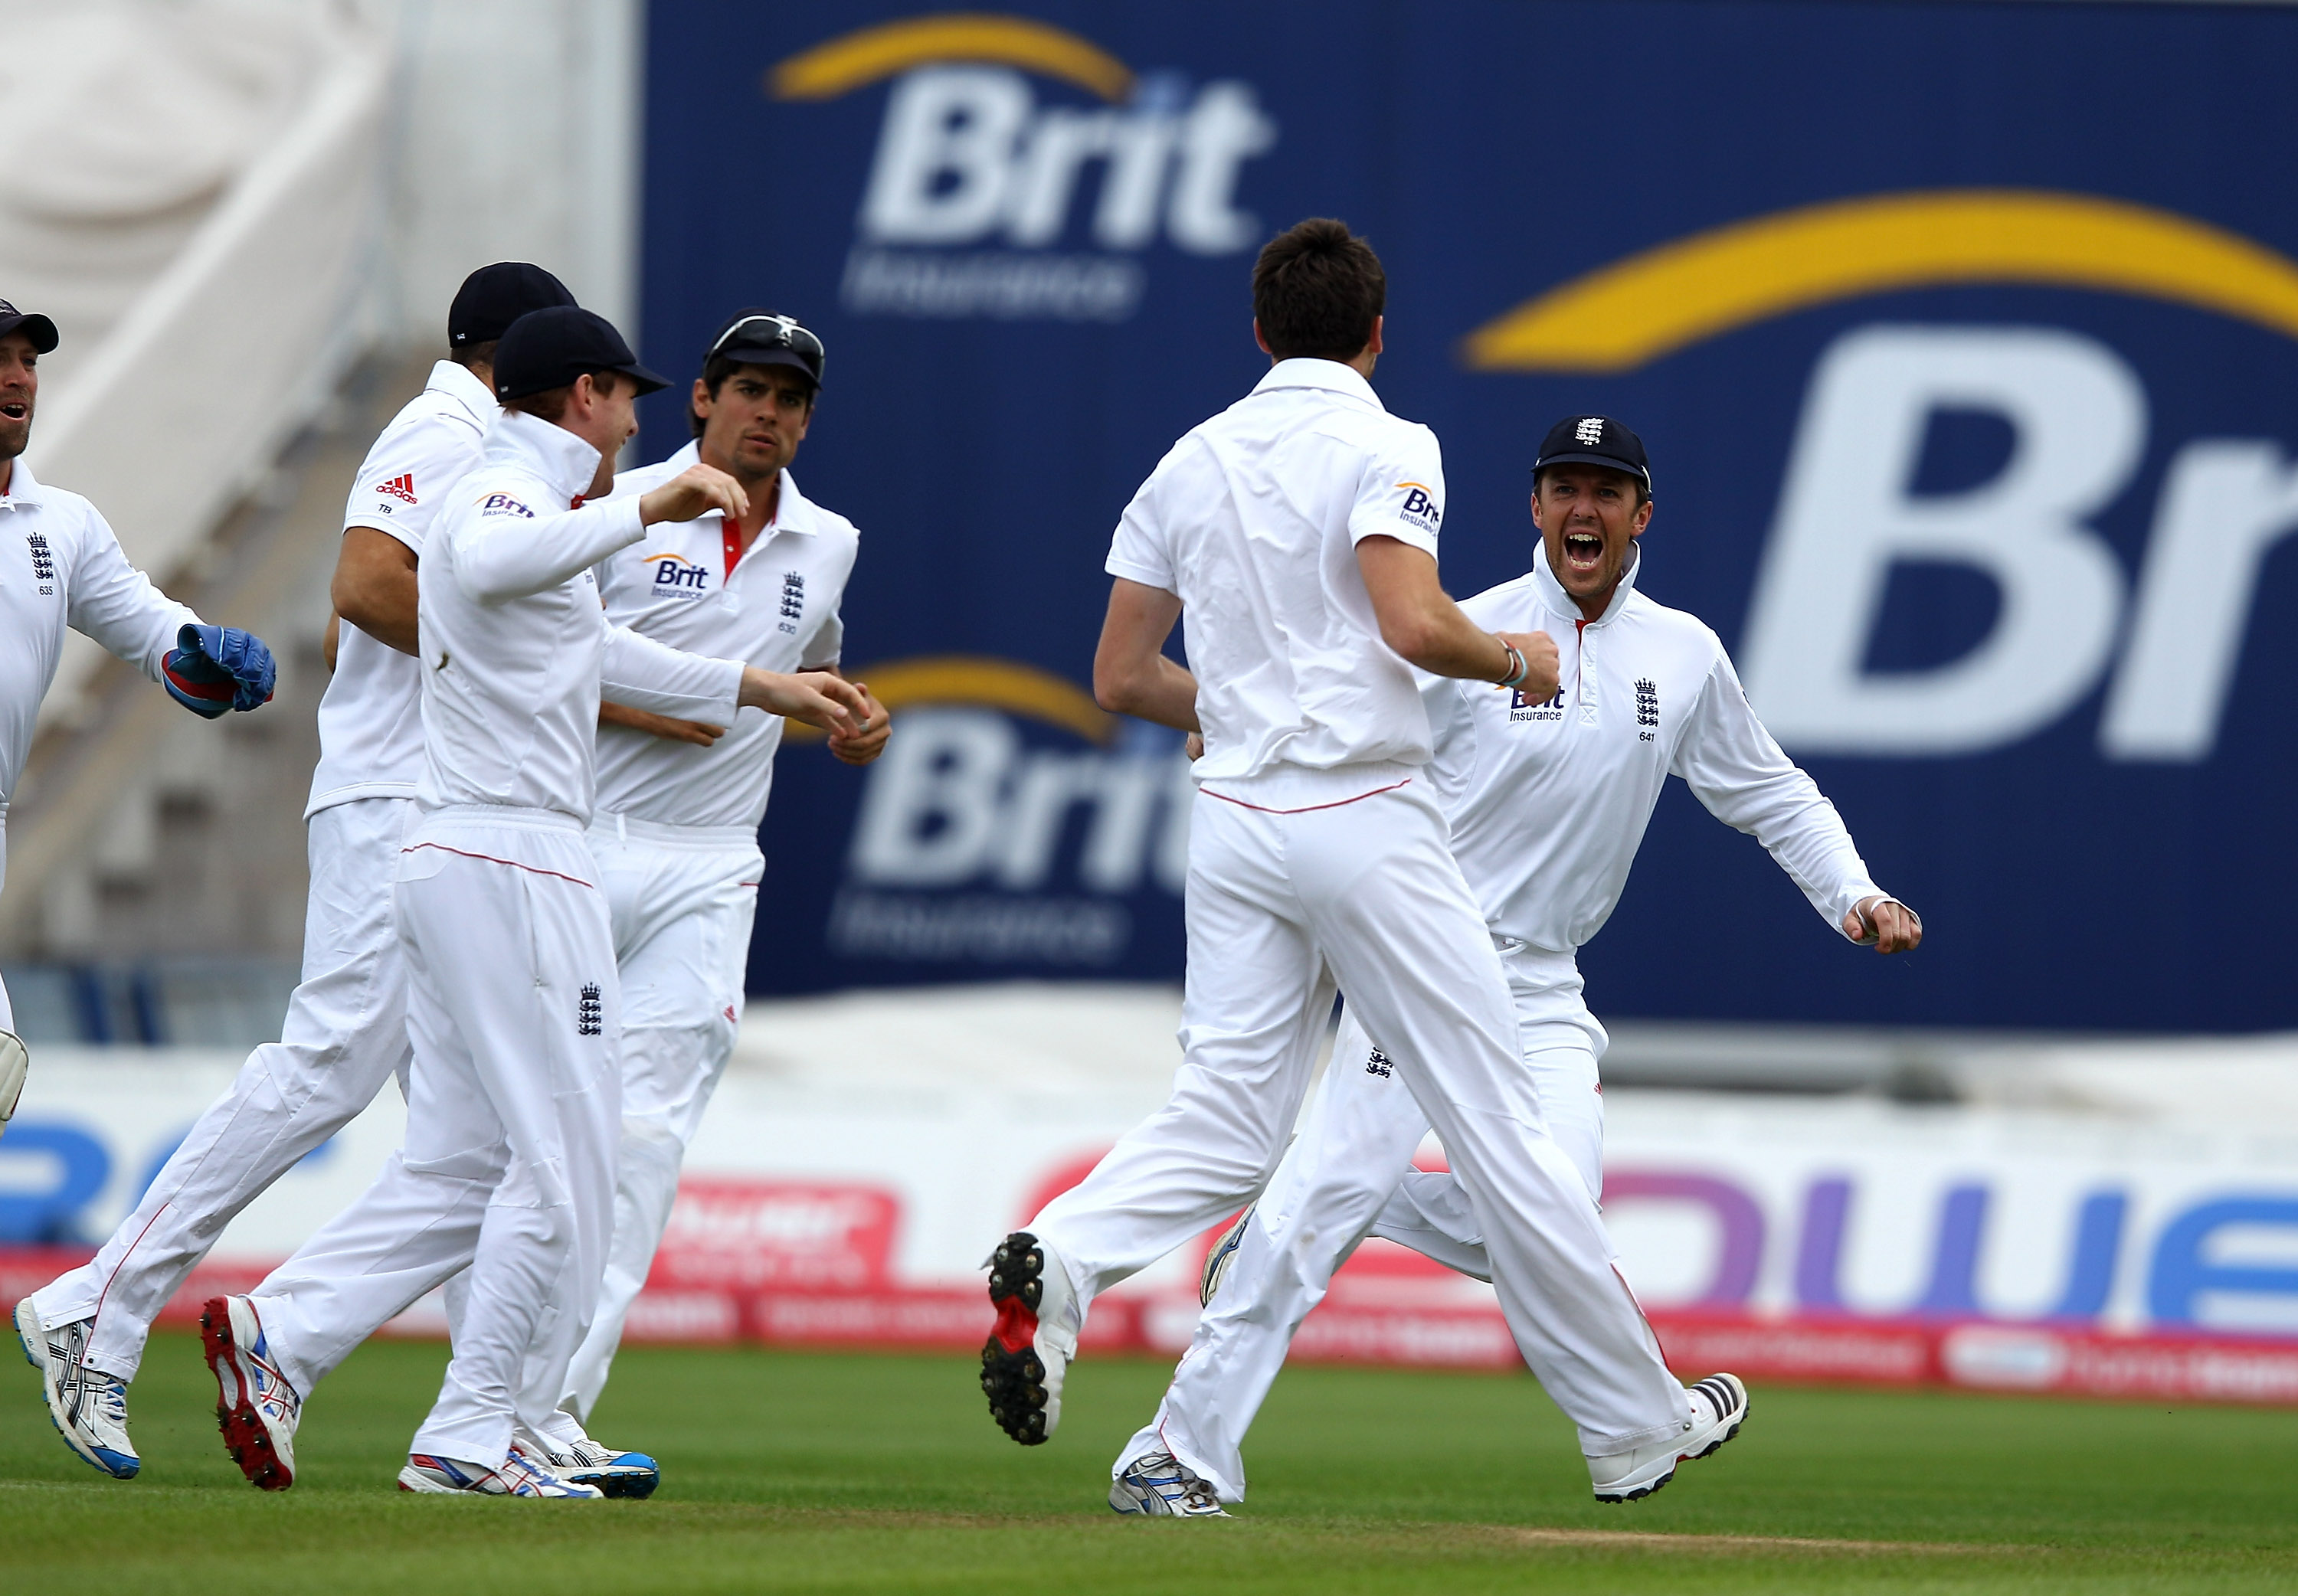 England cricket and Brit Insurance